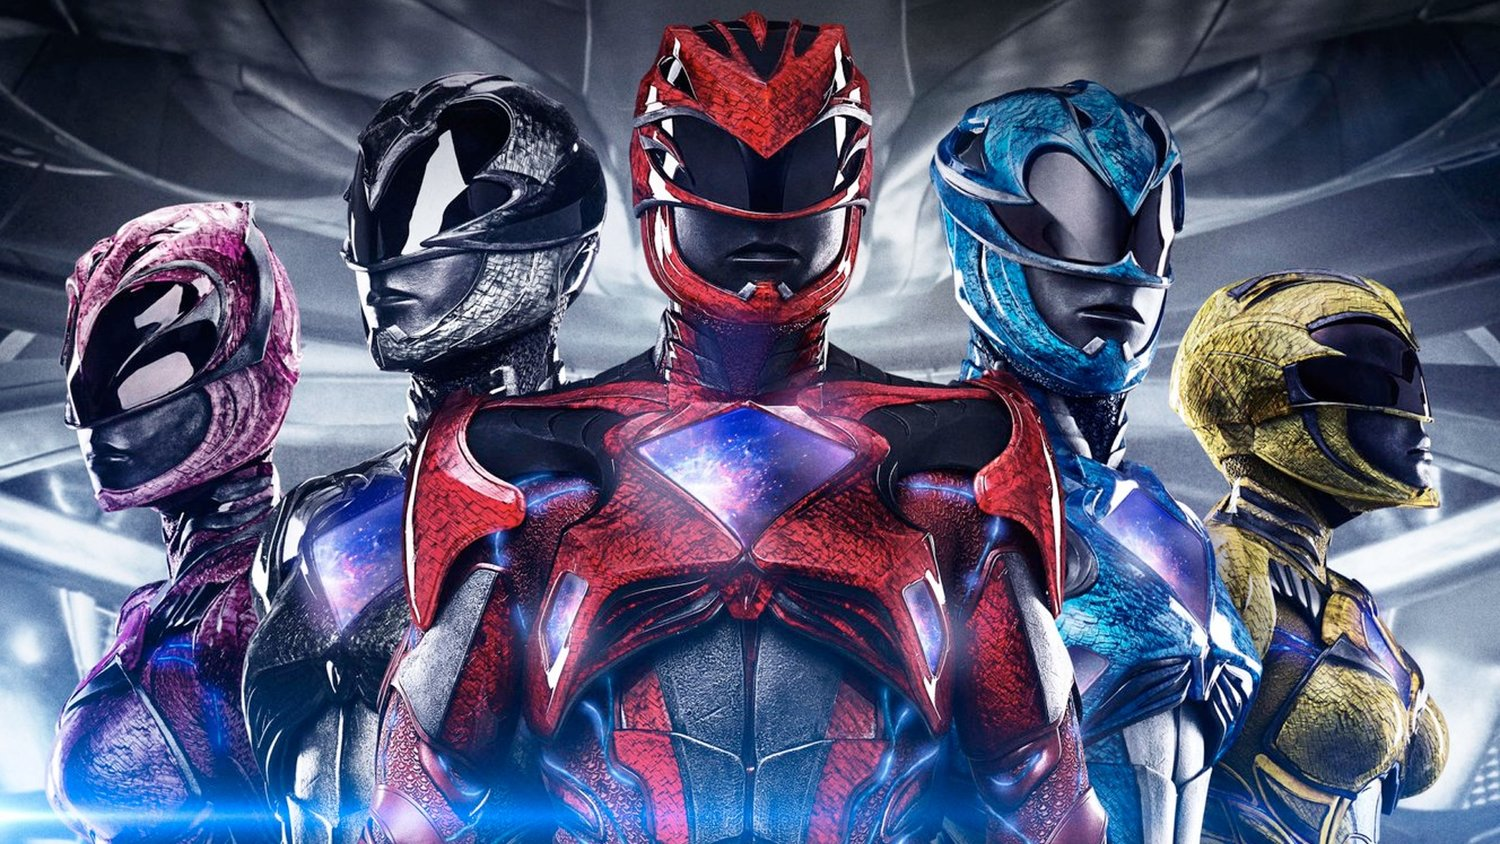 The POWER RANGERS Film will Feature the First Openly Gay Superhero